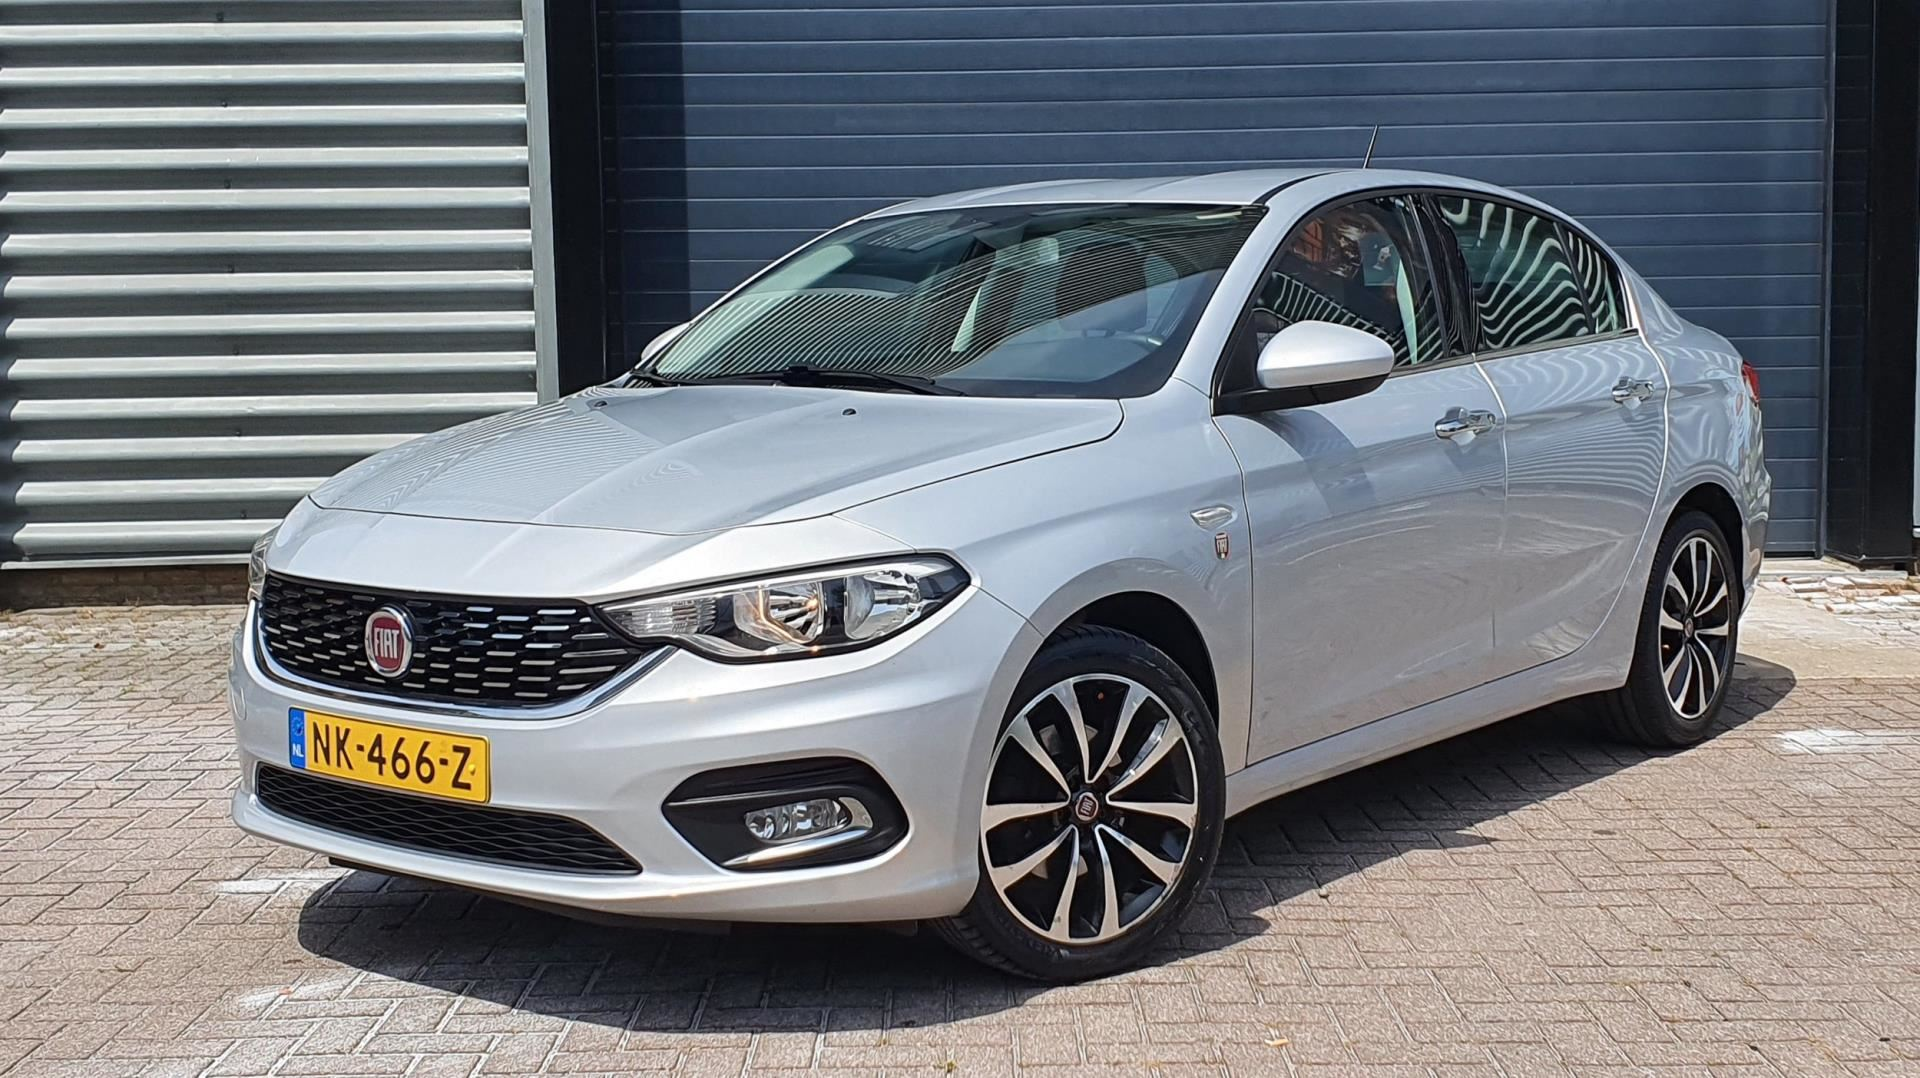 Fiat Tipo occasion - Car Trade Nass